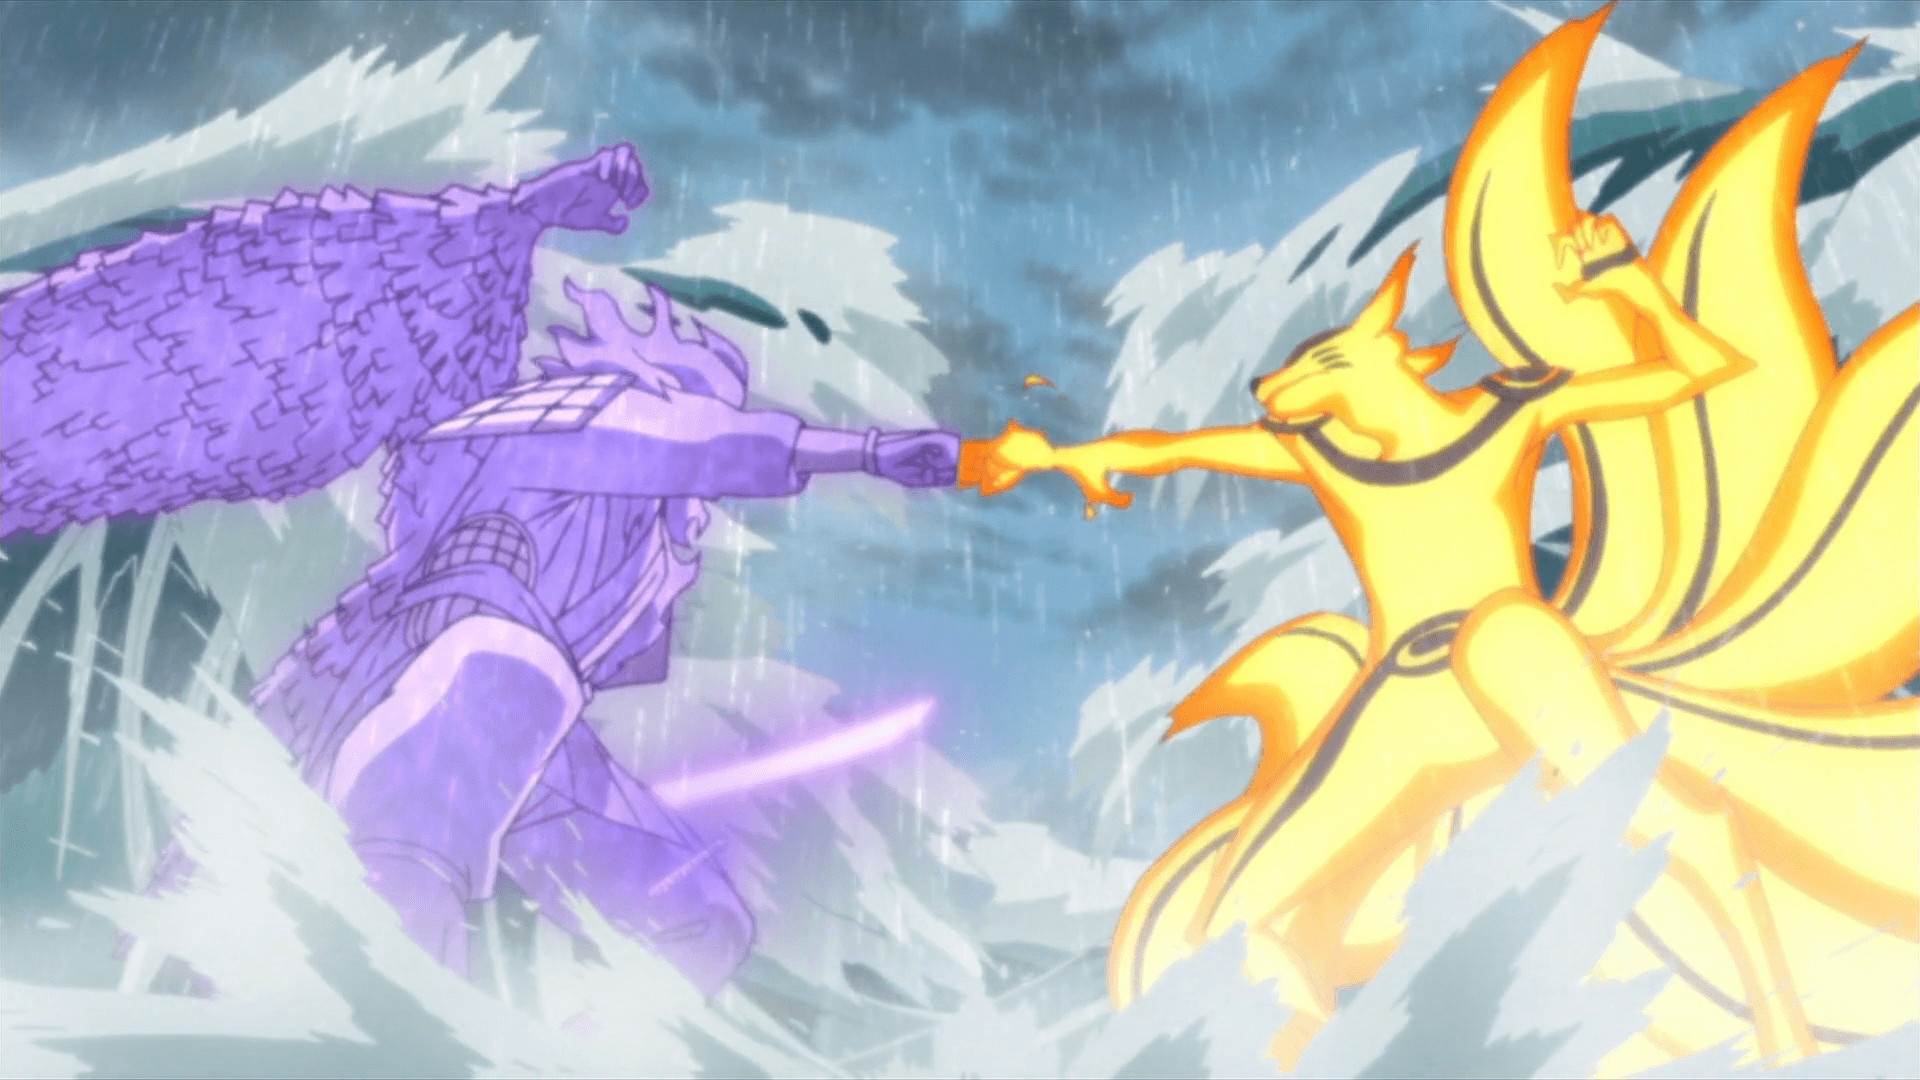 Wallpaper Naruto Vs Sasuke Final Battle Top Anime Wallpaper